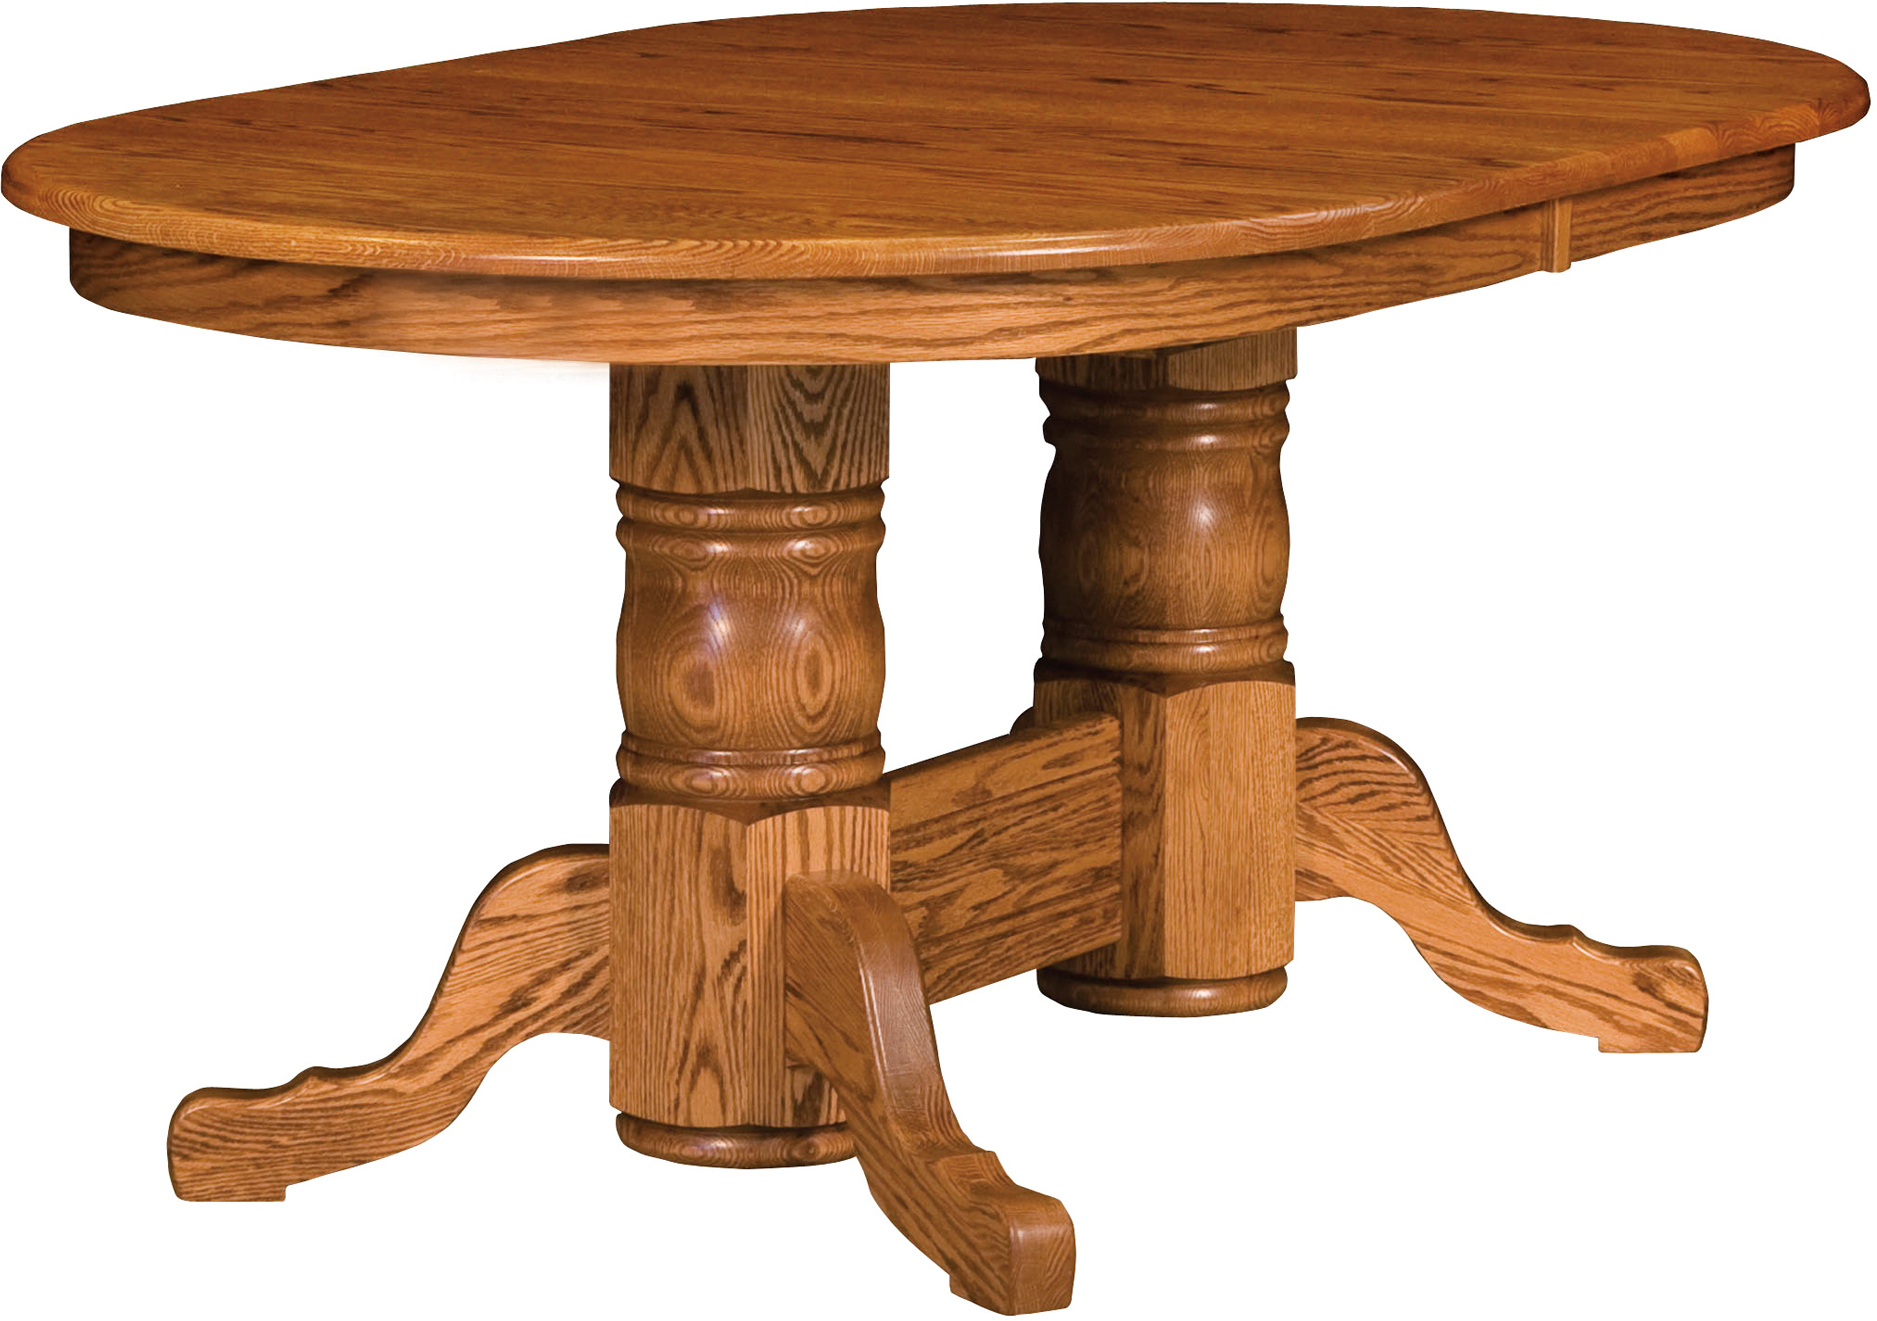 Traditional Double Pedestal Table | Brandenberry Amish With Best And Newest Sevinc Pedestal Dining Tables (View 4 of 15)